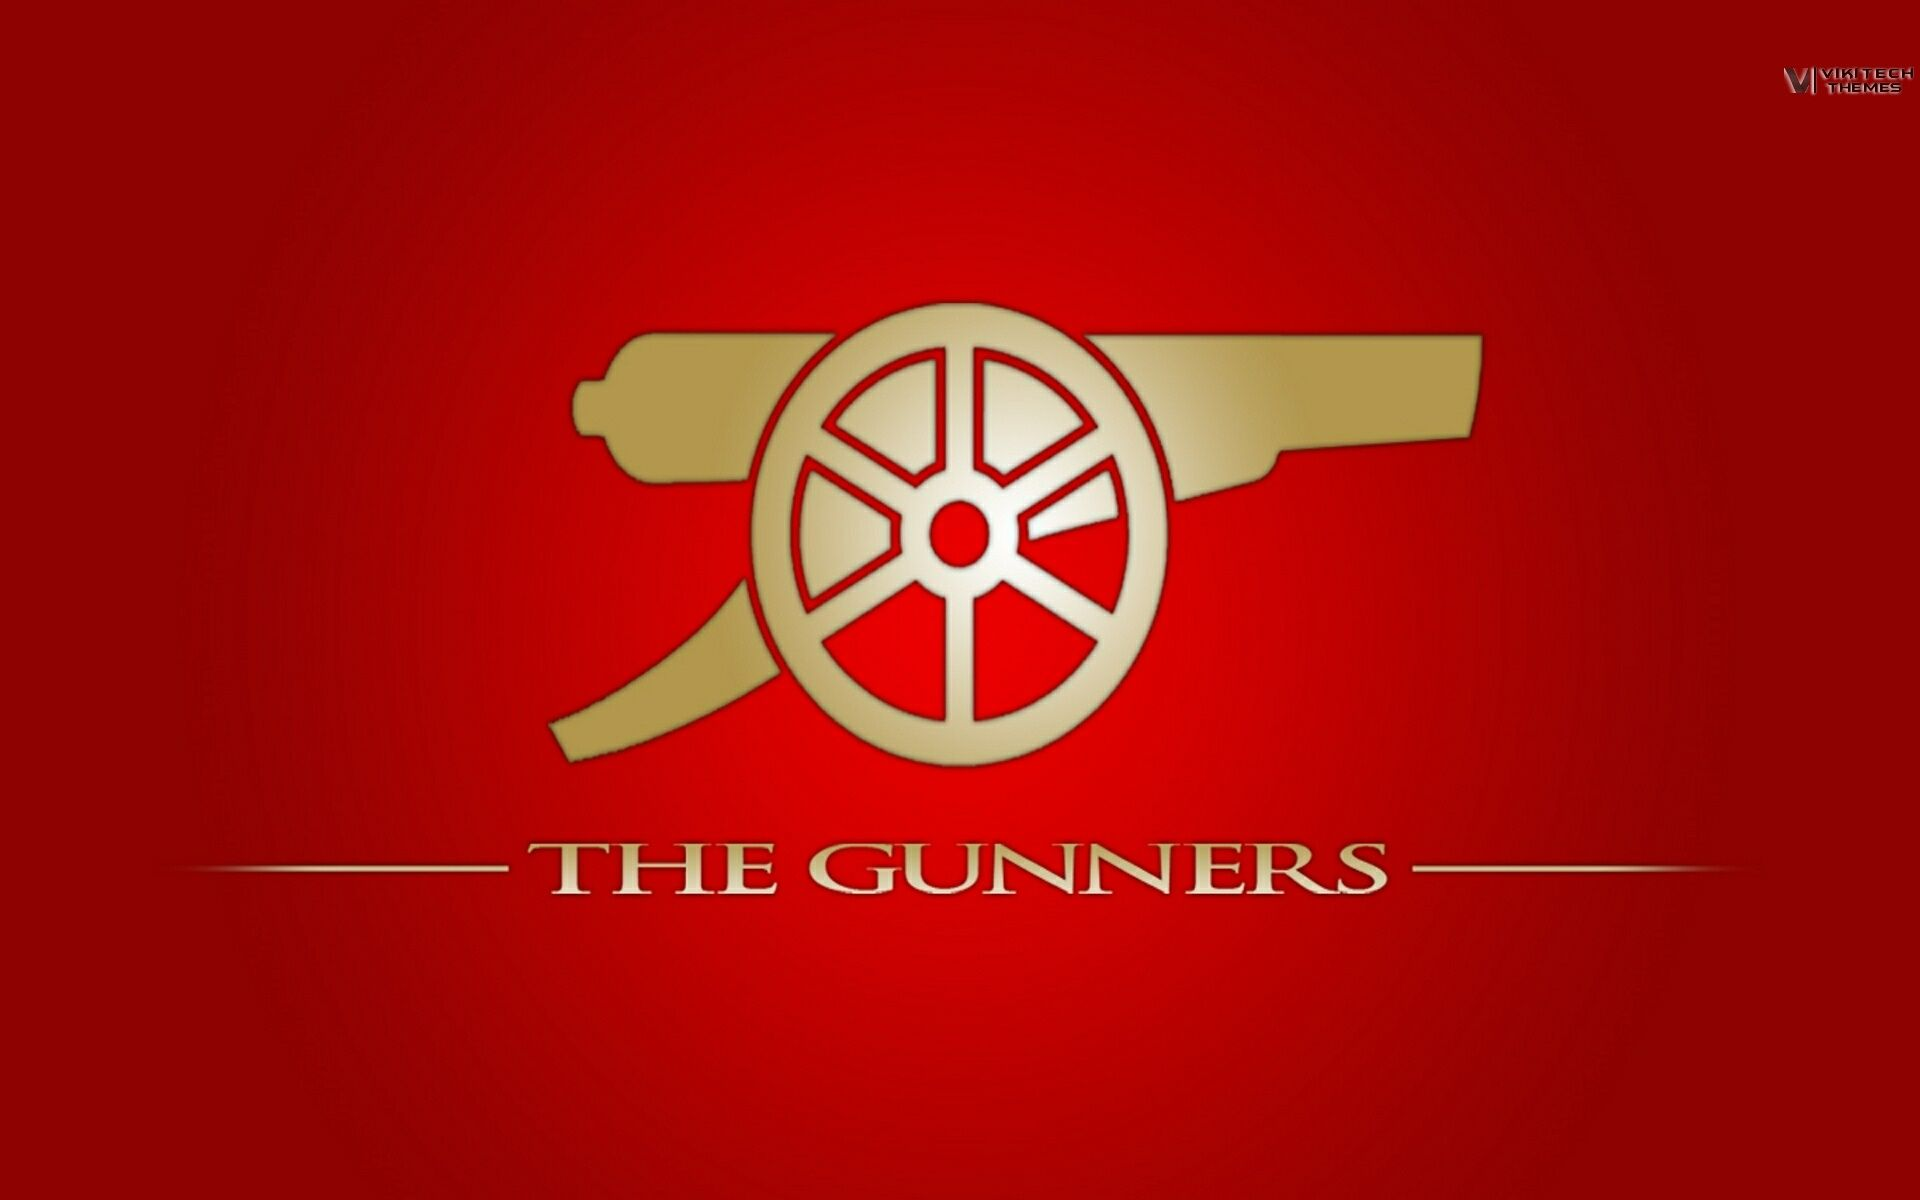 Arsenal Wallpaper For Android On Wallpaperget Com: Arsenal Logo Wallpaper 2015